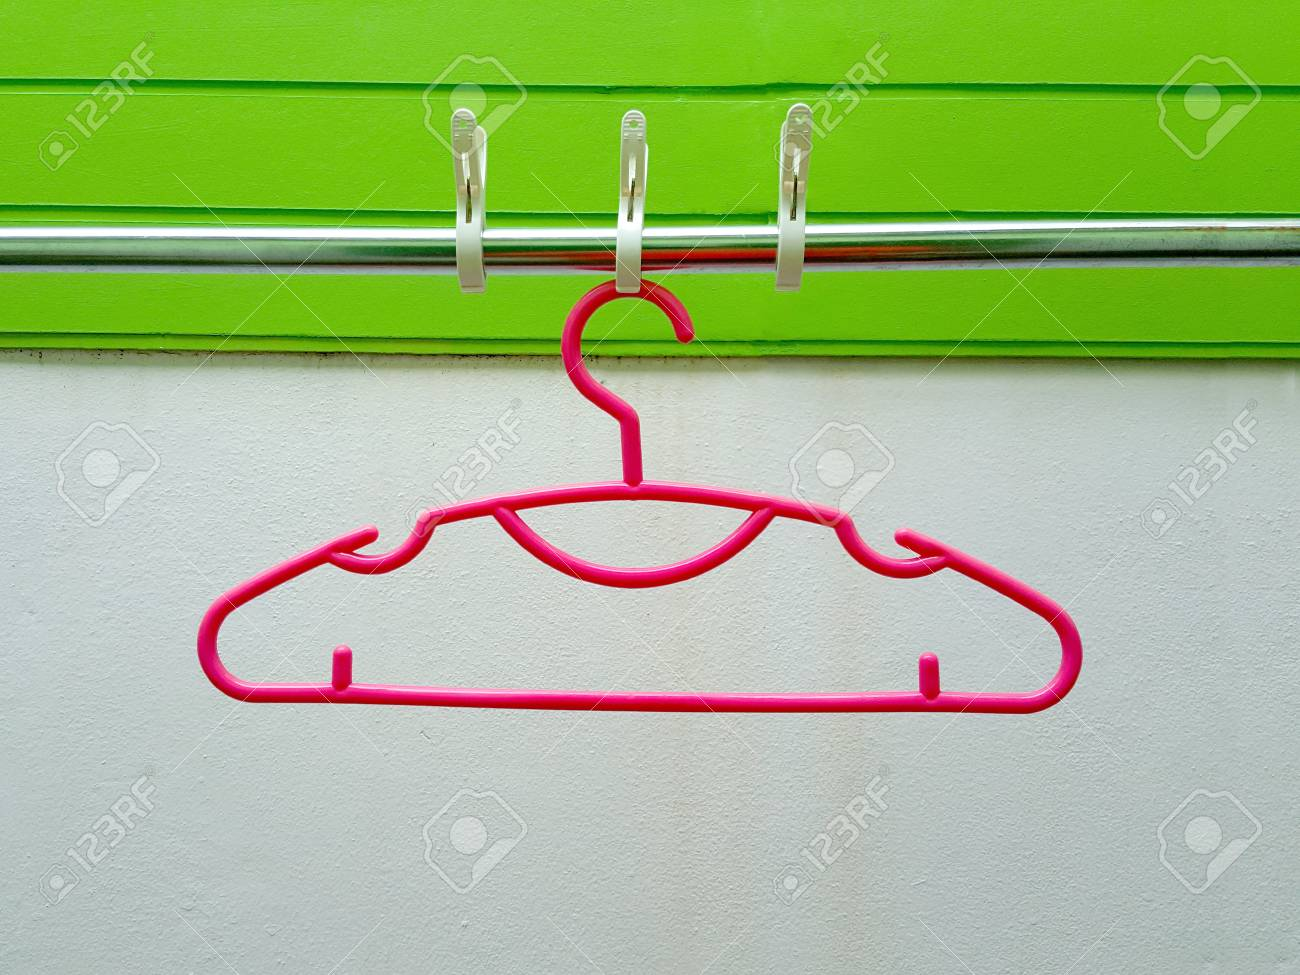 White Clothes Peg On Clothes Line On Green Wall Stock Photo, Picture ...